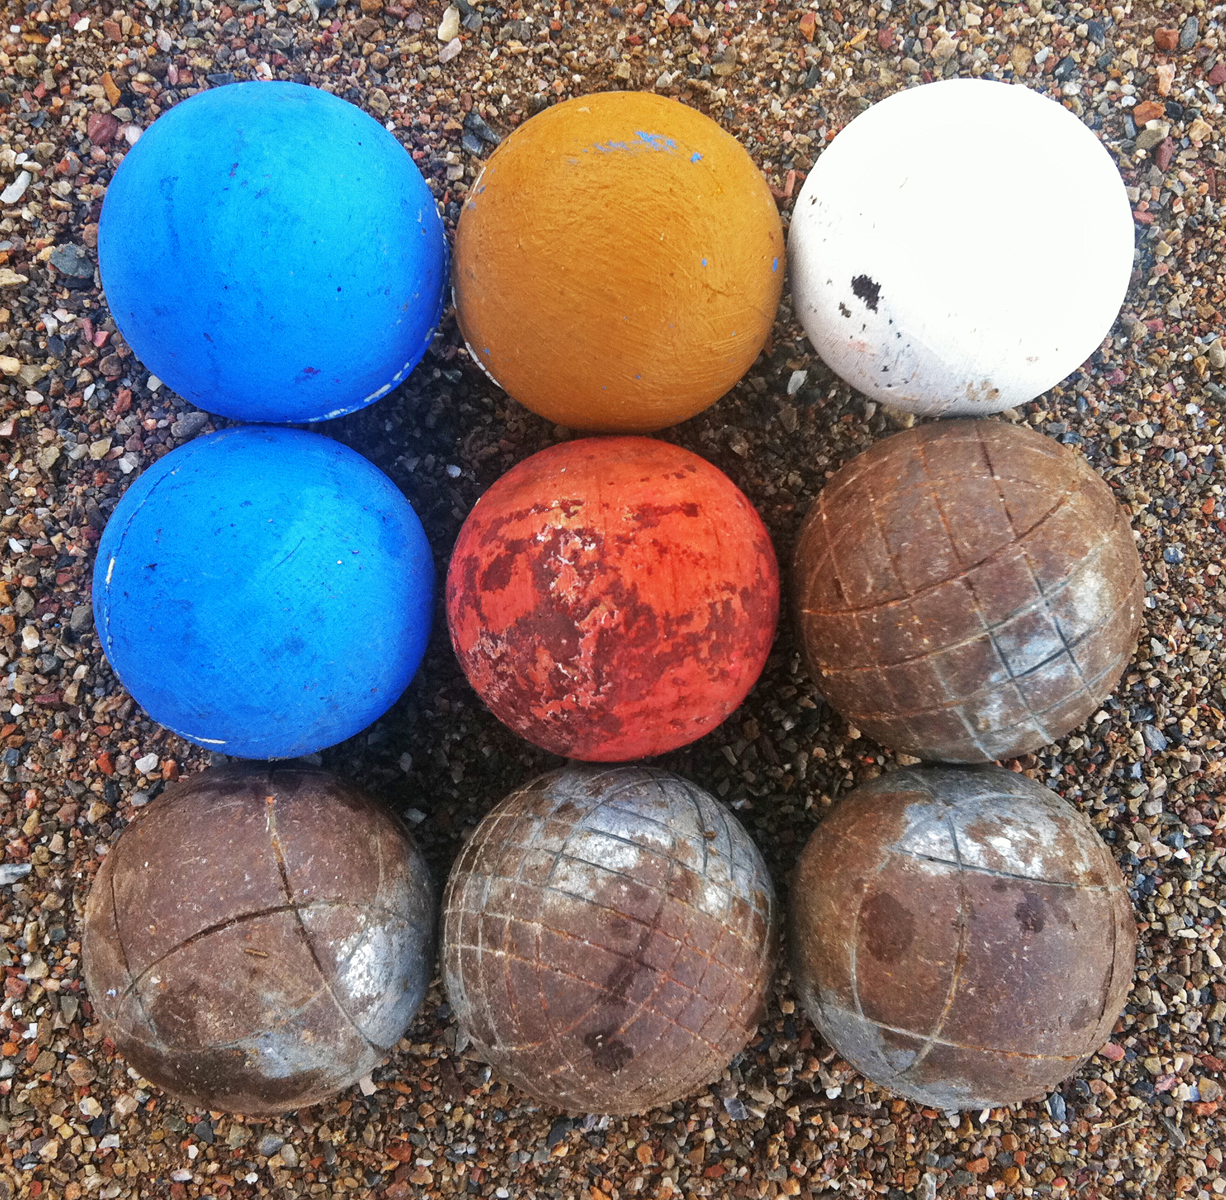 Nine bocci balls, some metal, others bright painted wood, arranged in a square.